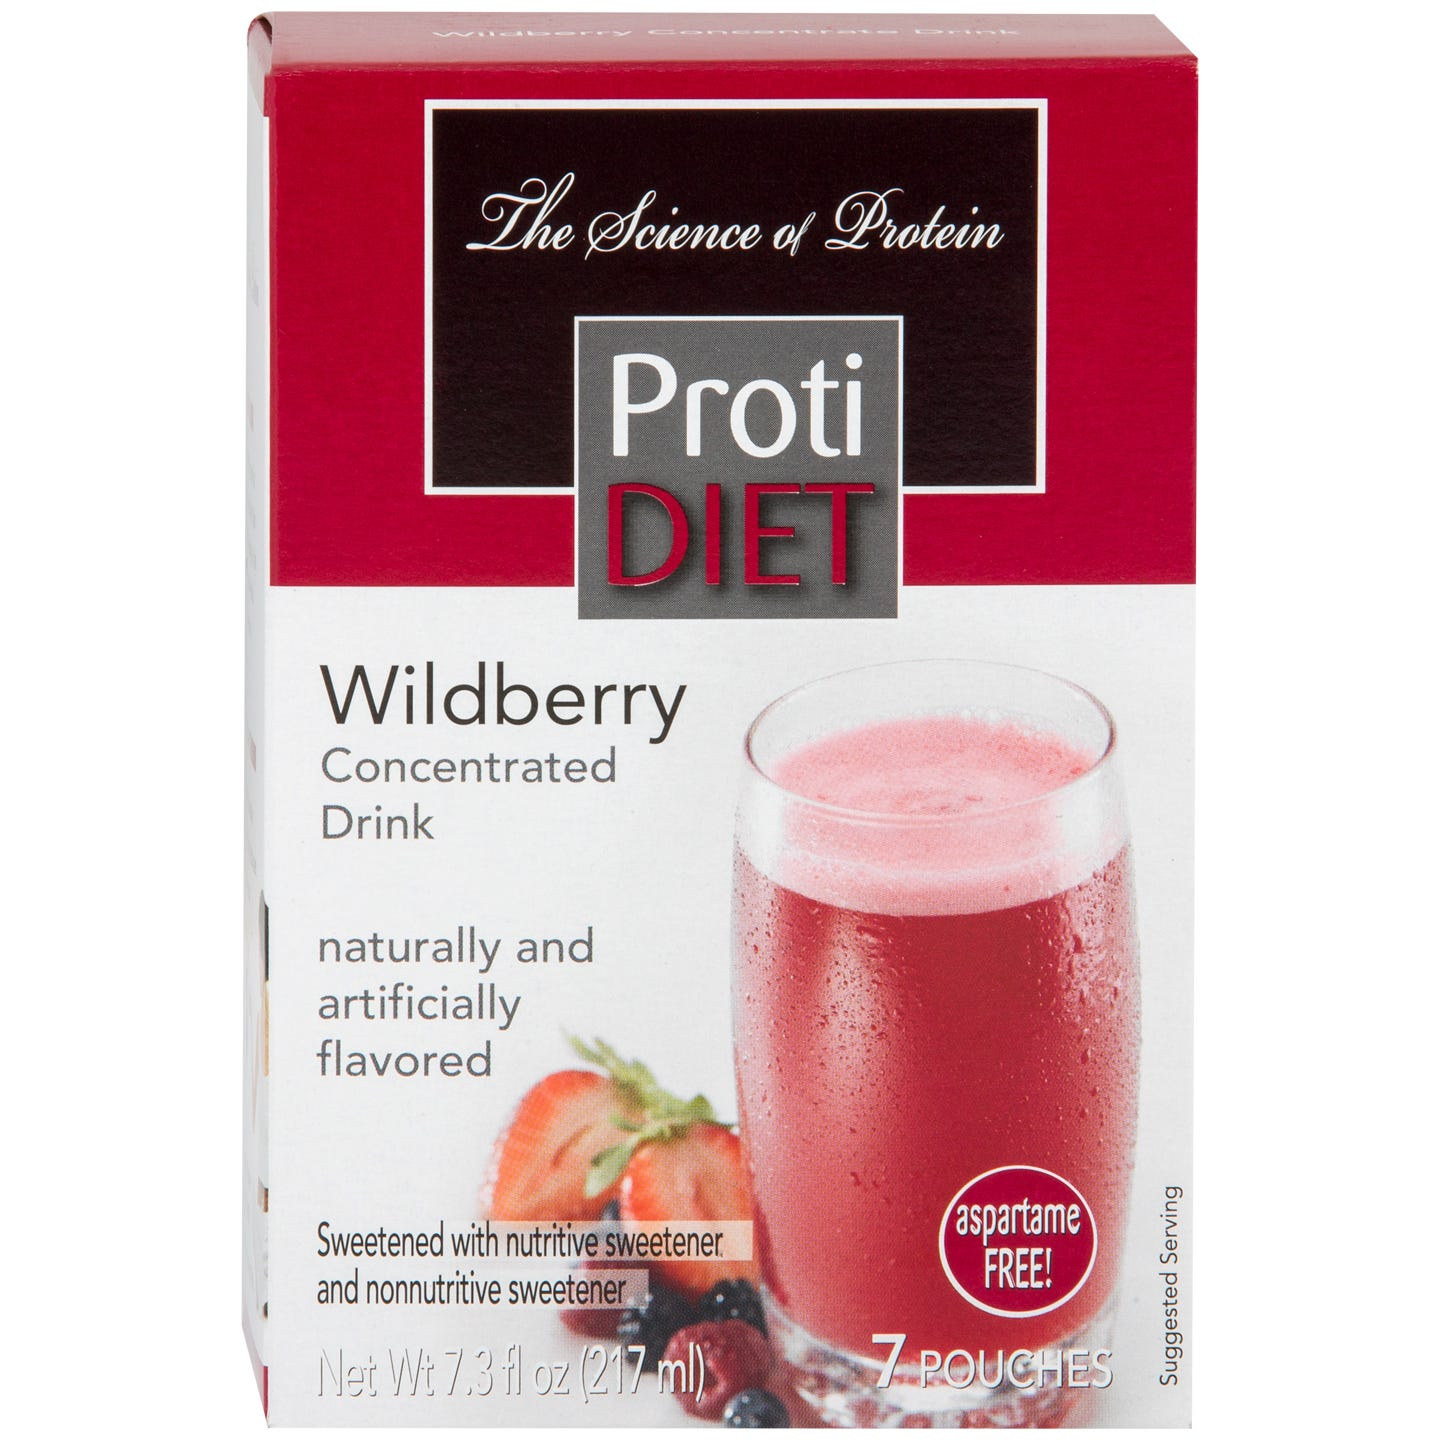 Protein Fruit Drink Concentrate Wildberry (7 ct) – ProtiDiet